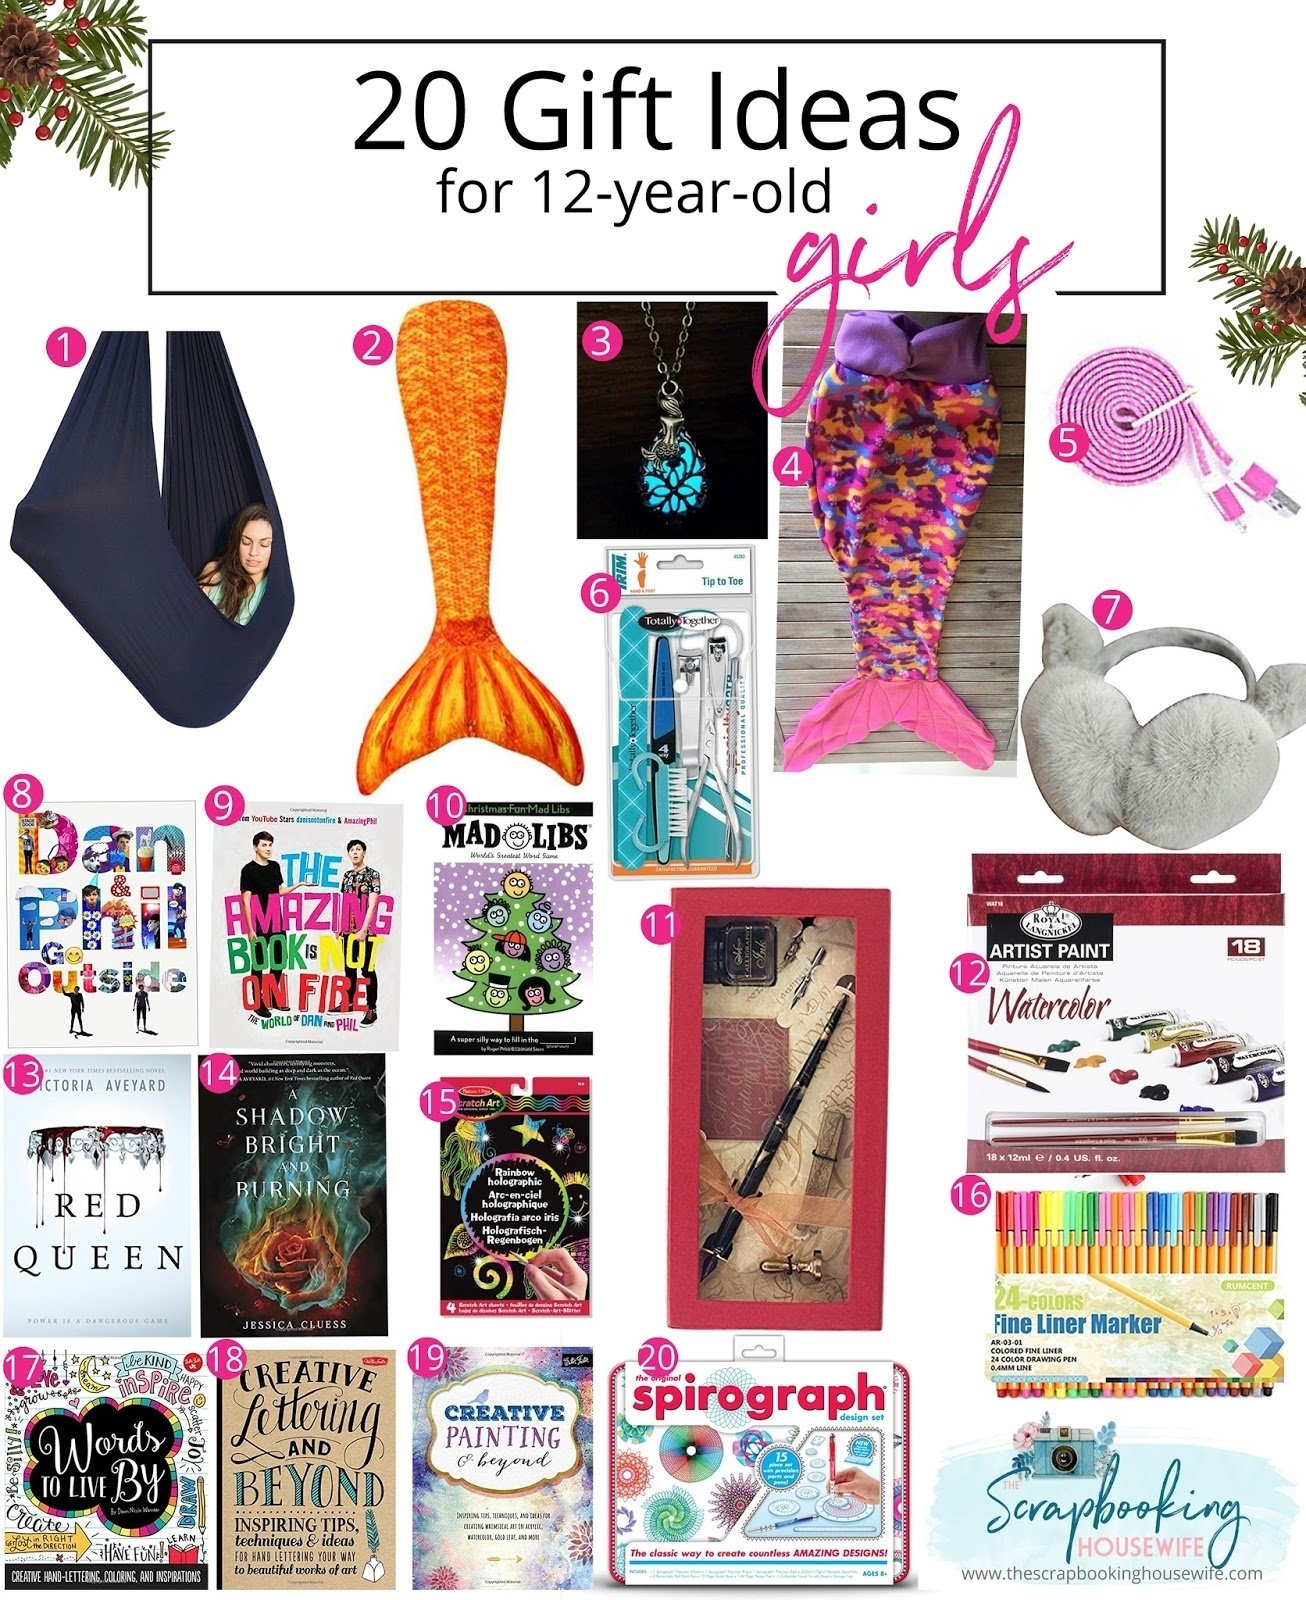 10 Famous Gift Ideas For 15 Yr Old Girl ellabella designs 20 gift ideas for 12 year old tween girls 10